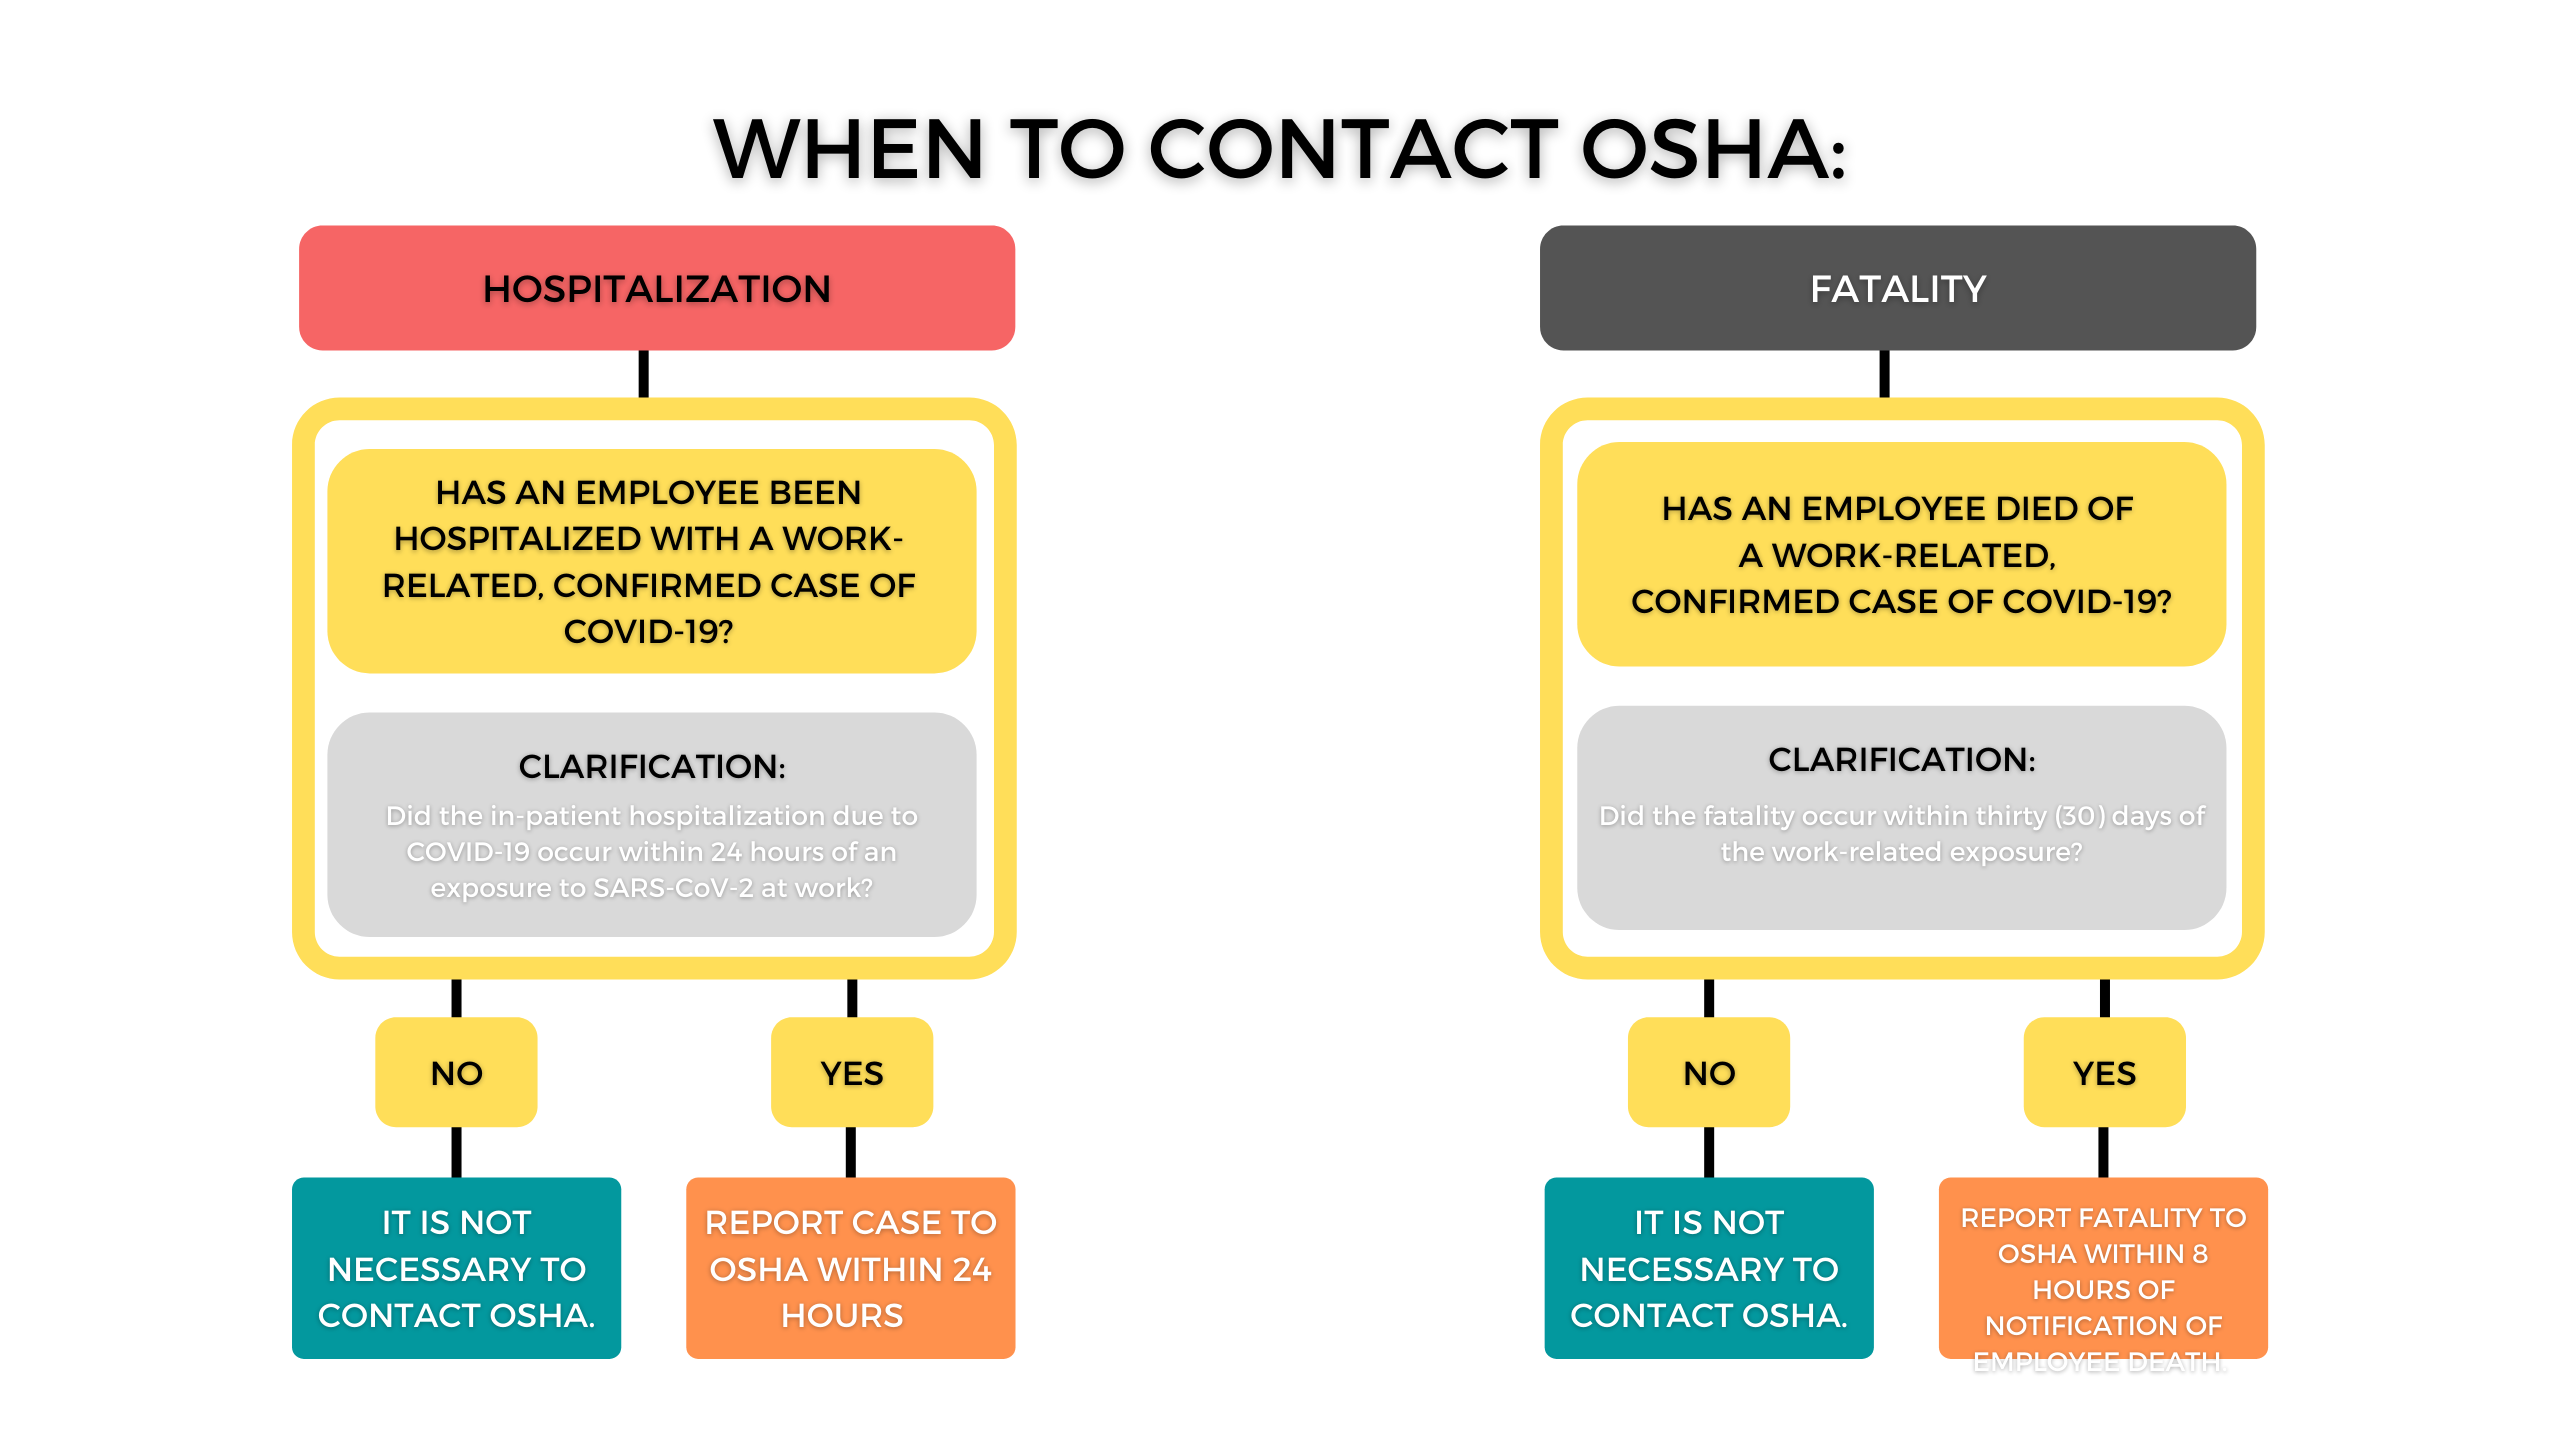 reporting covid-19 hospitalizations and fatalities to osha